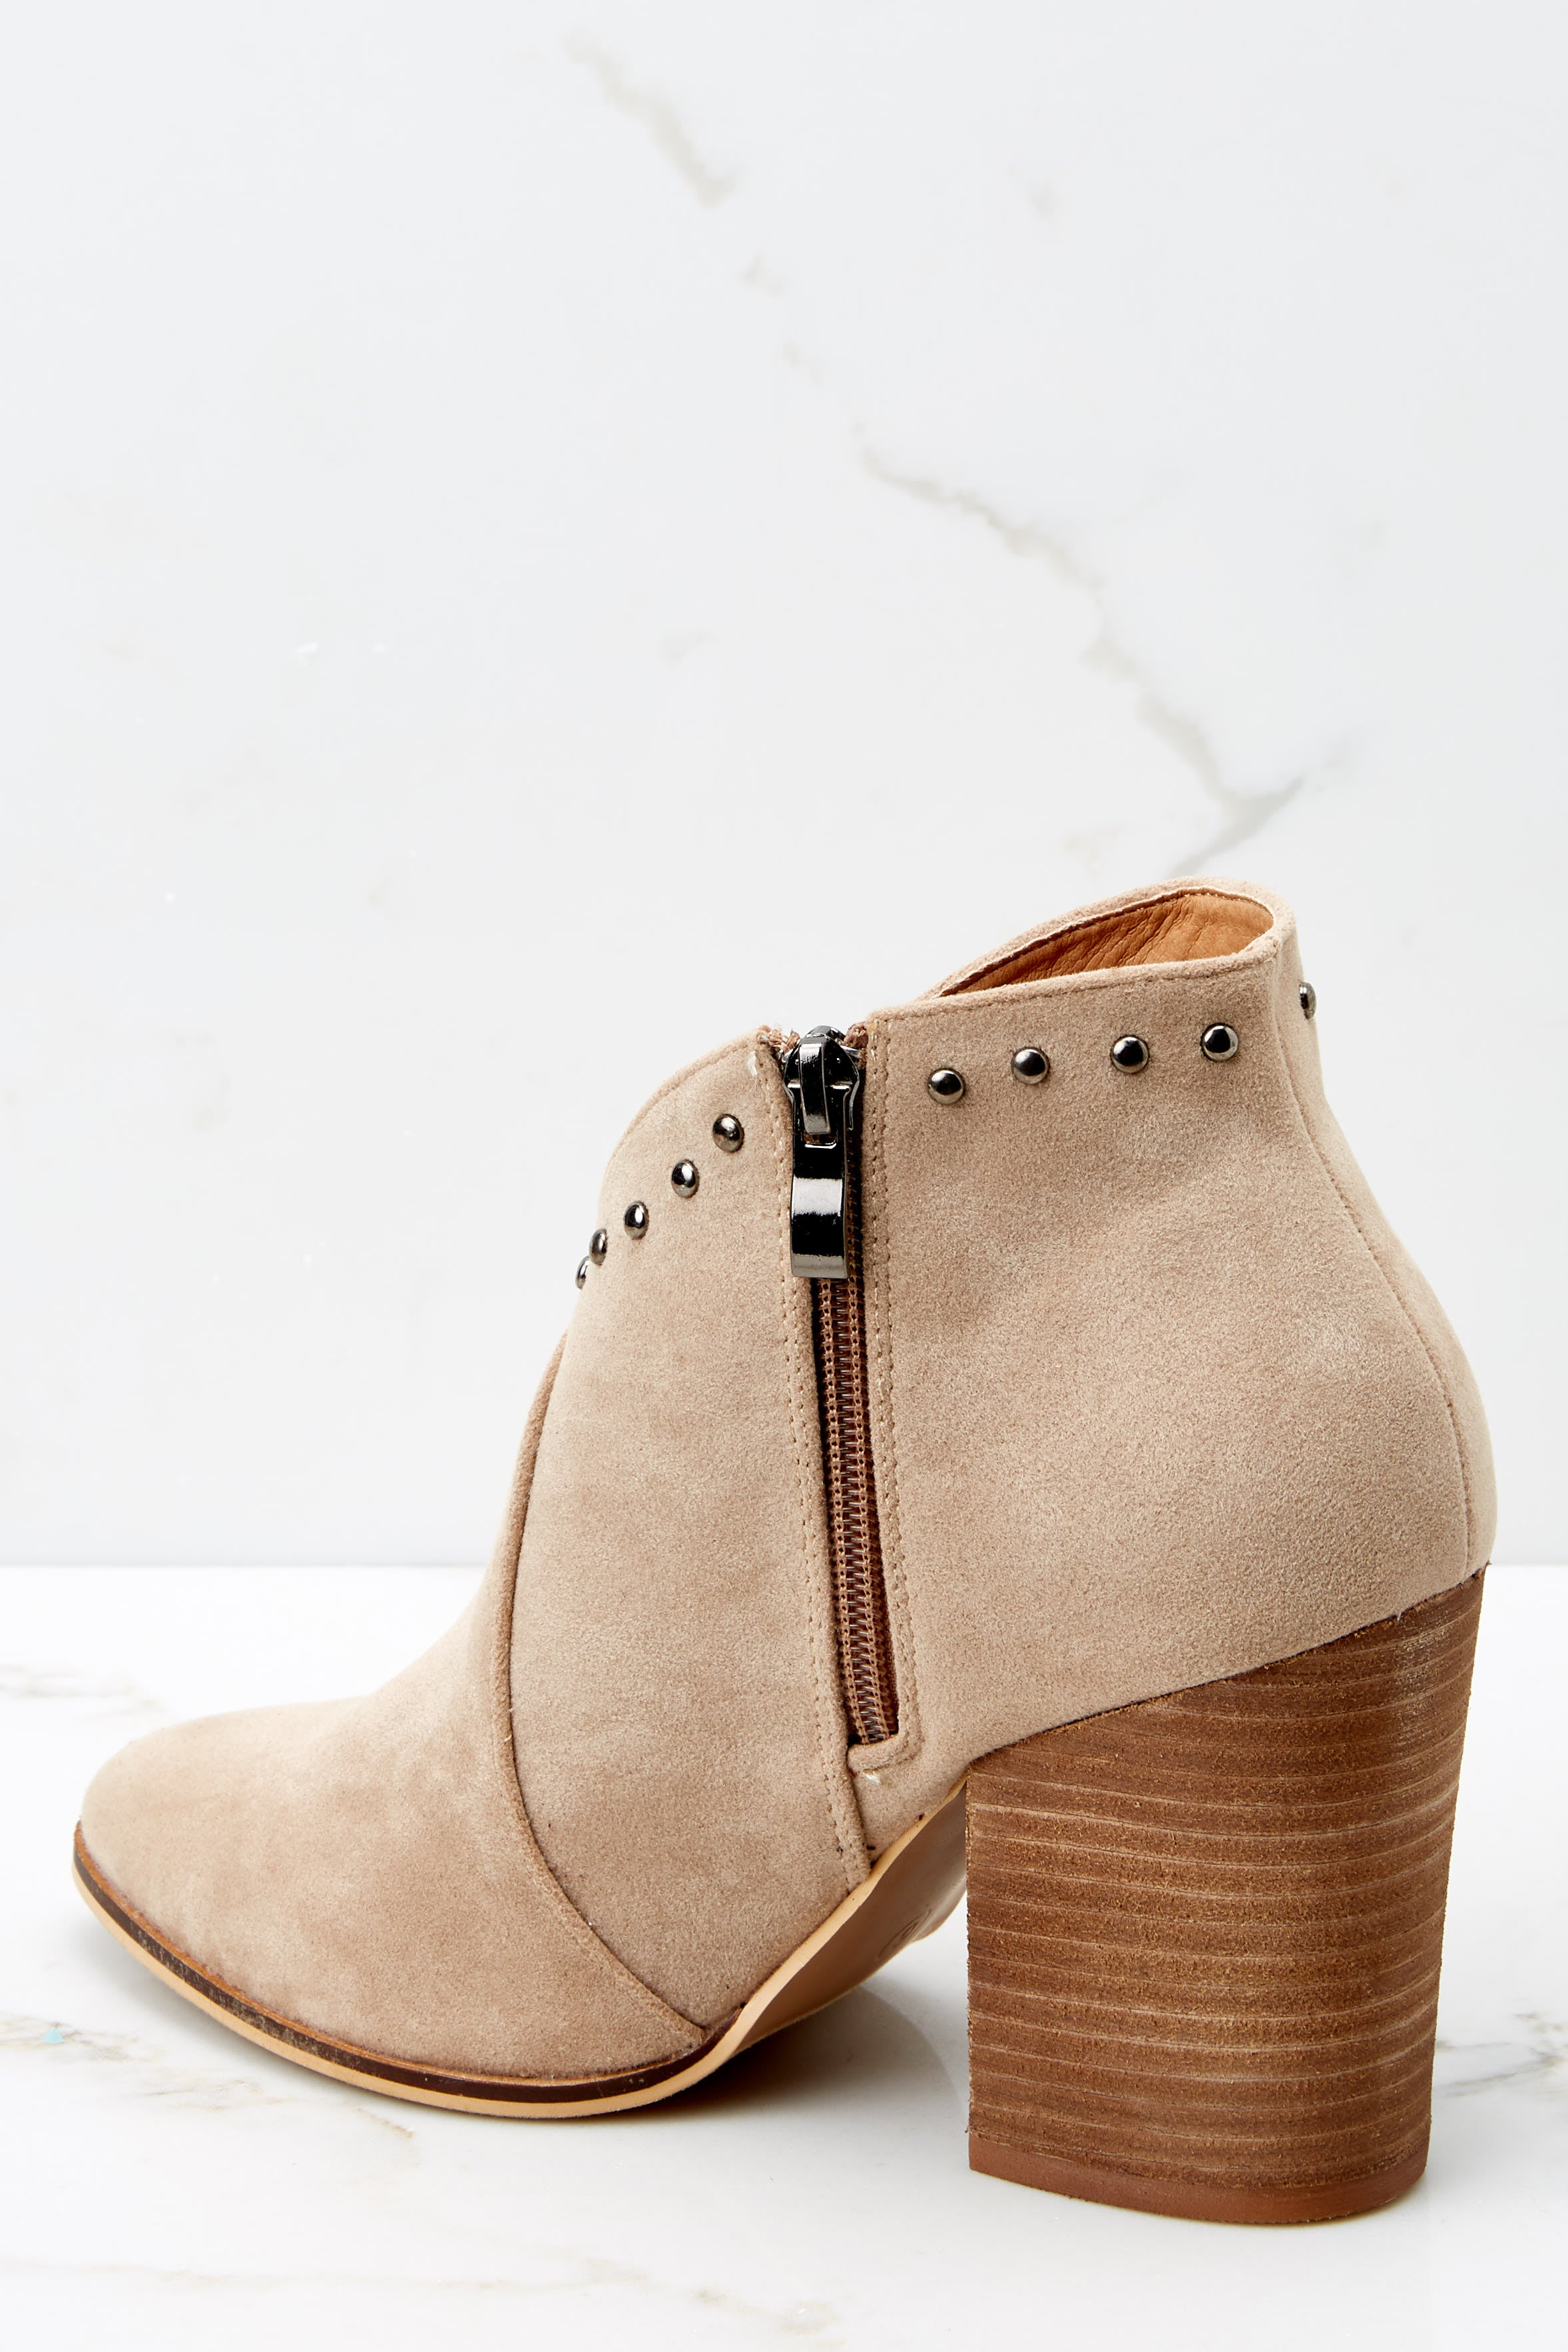 4 Wander Through Aspens Sand Beige Booties at reddressboutique.com